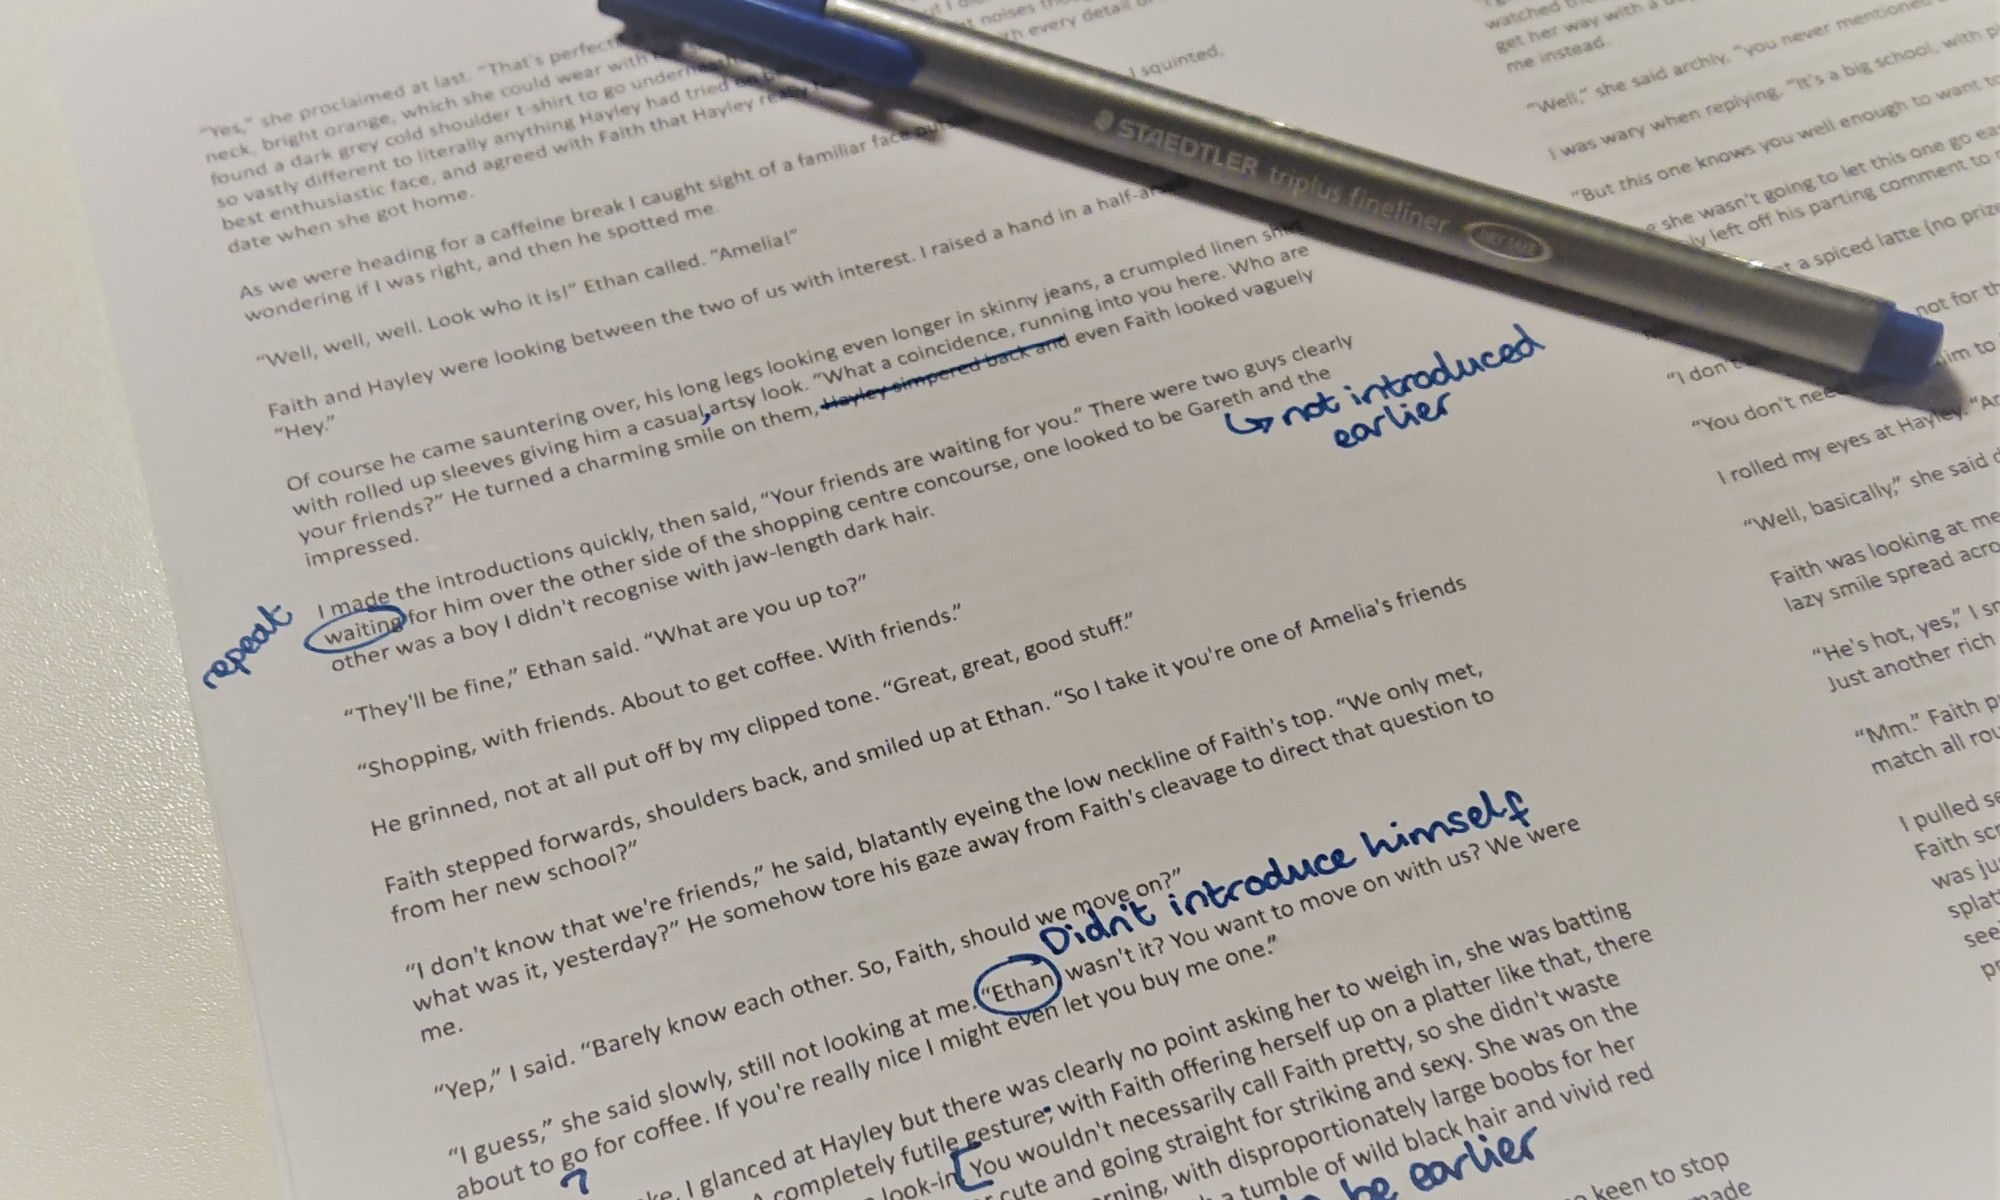 A printed sheet of a story in progress with handwritten notes in blue ink